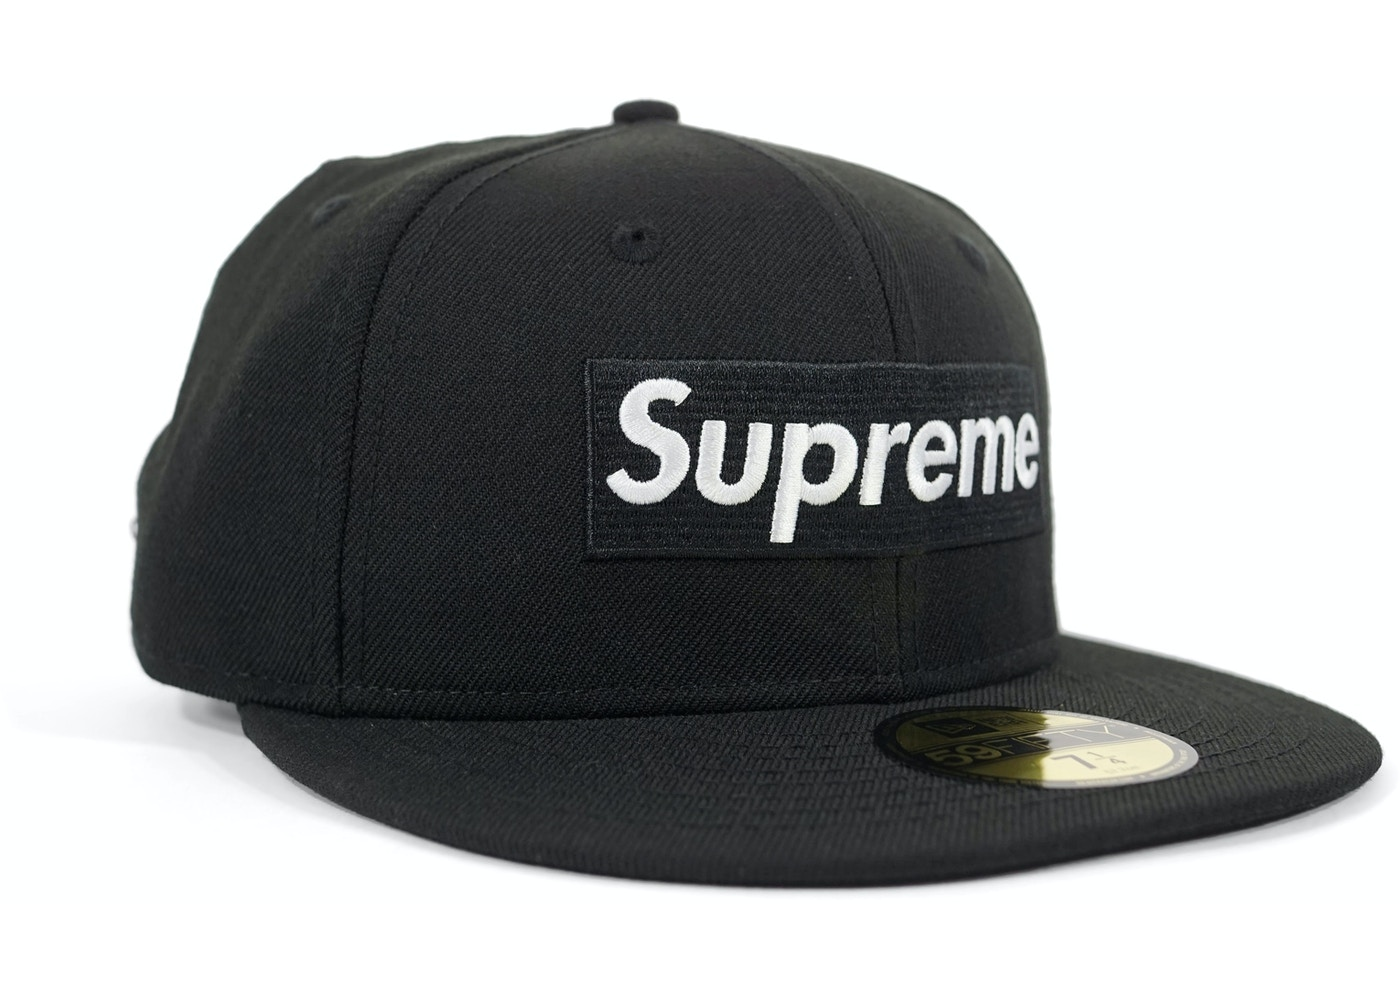 73c2f6a2af9 Supreme Playboy Box Logo New Era Cap Black - SS17